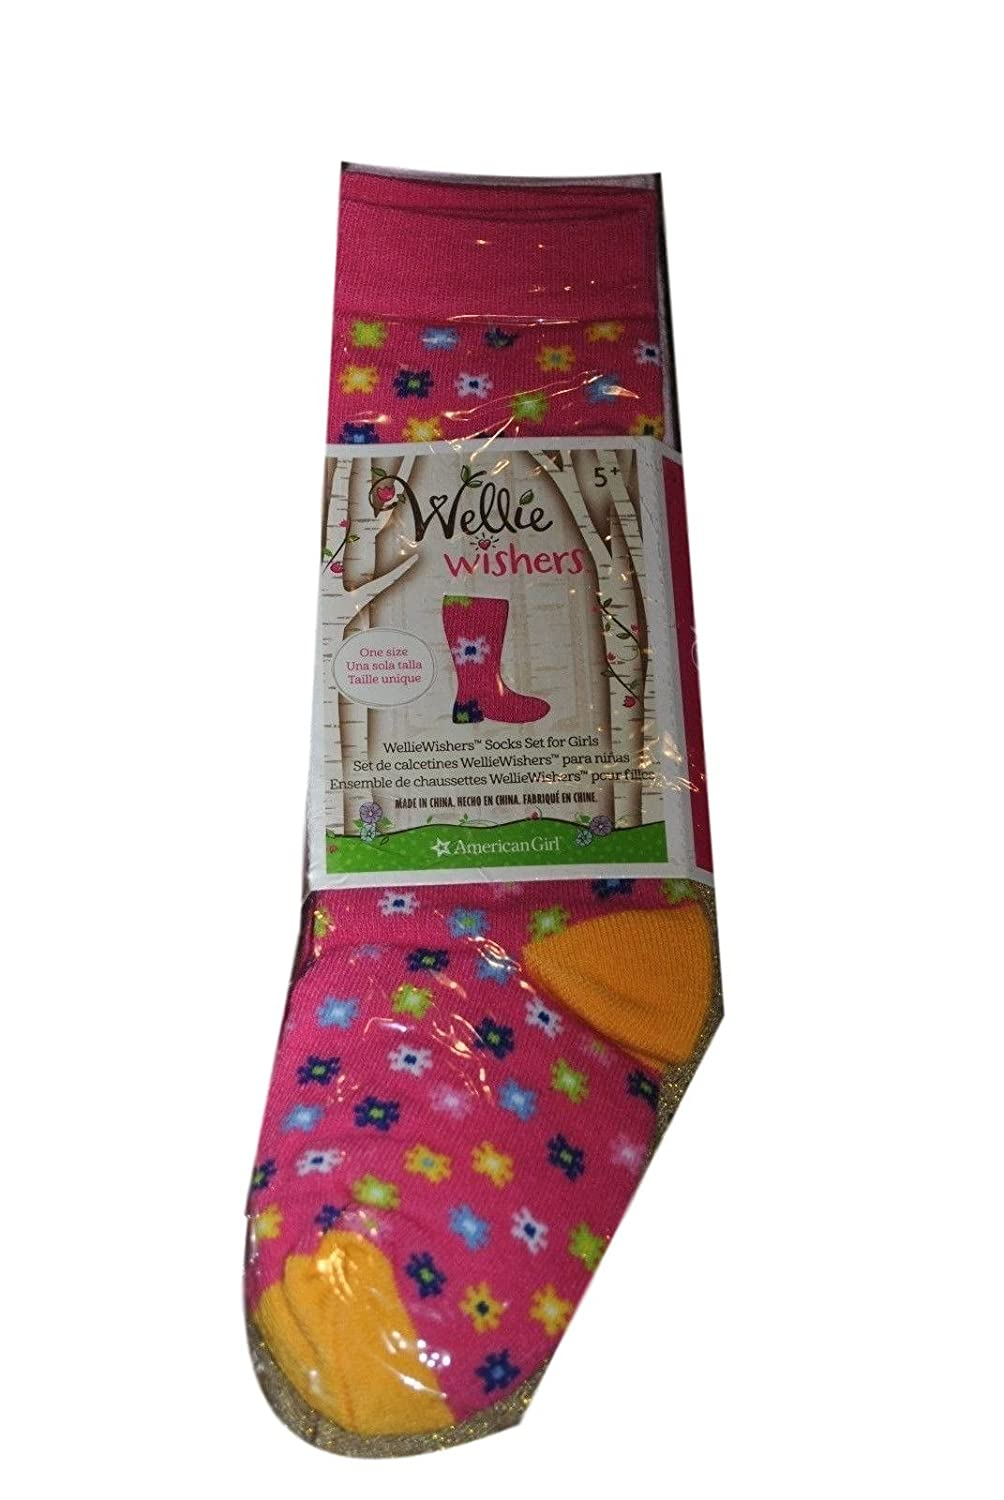 Amazon.com: American Girl Wellie Wishers Knee Socks for Girls All 5 Pair Welliewishers 9-12: Clothing